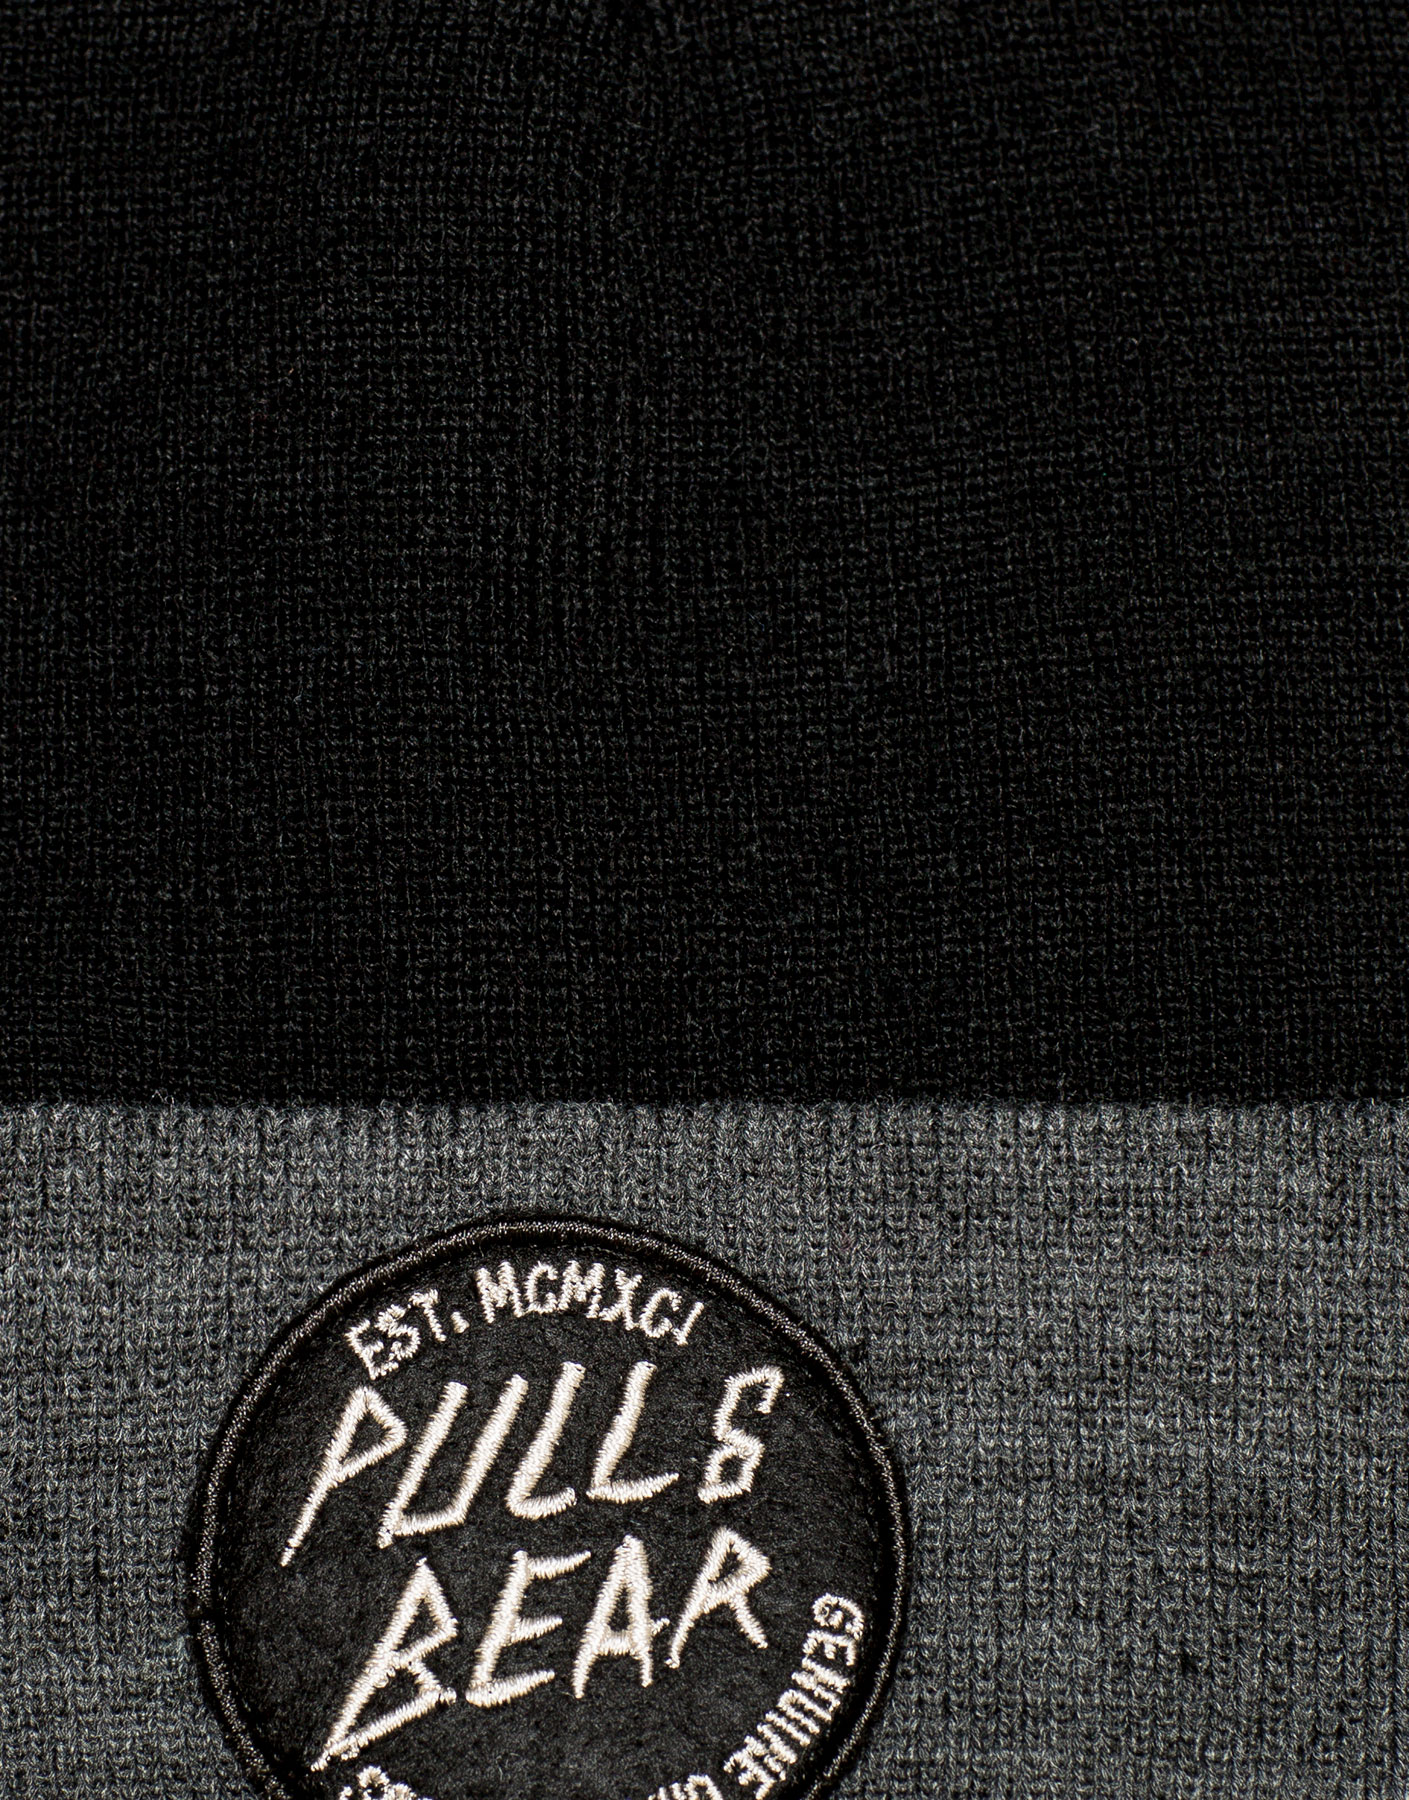 Pullandbear logo knit hat